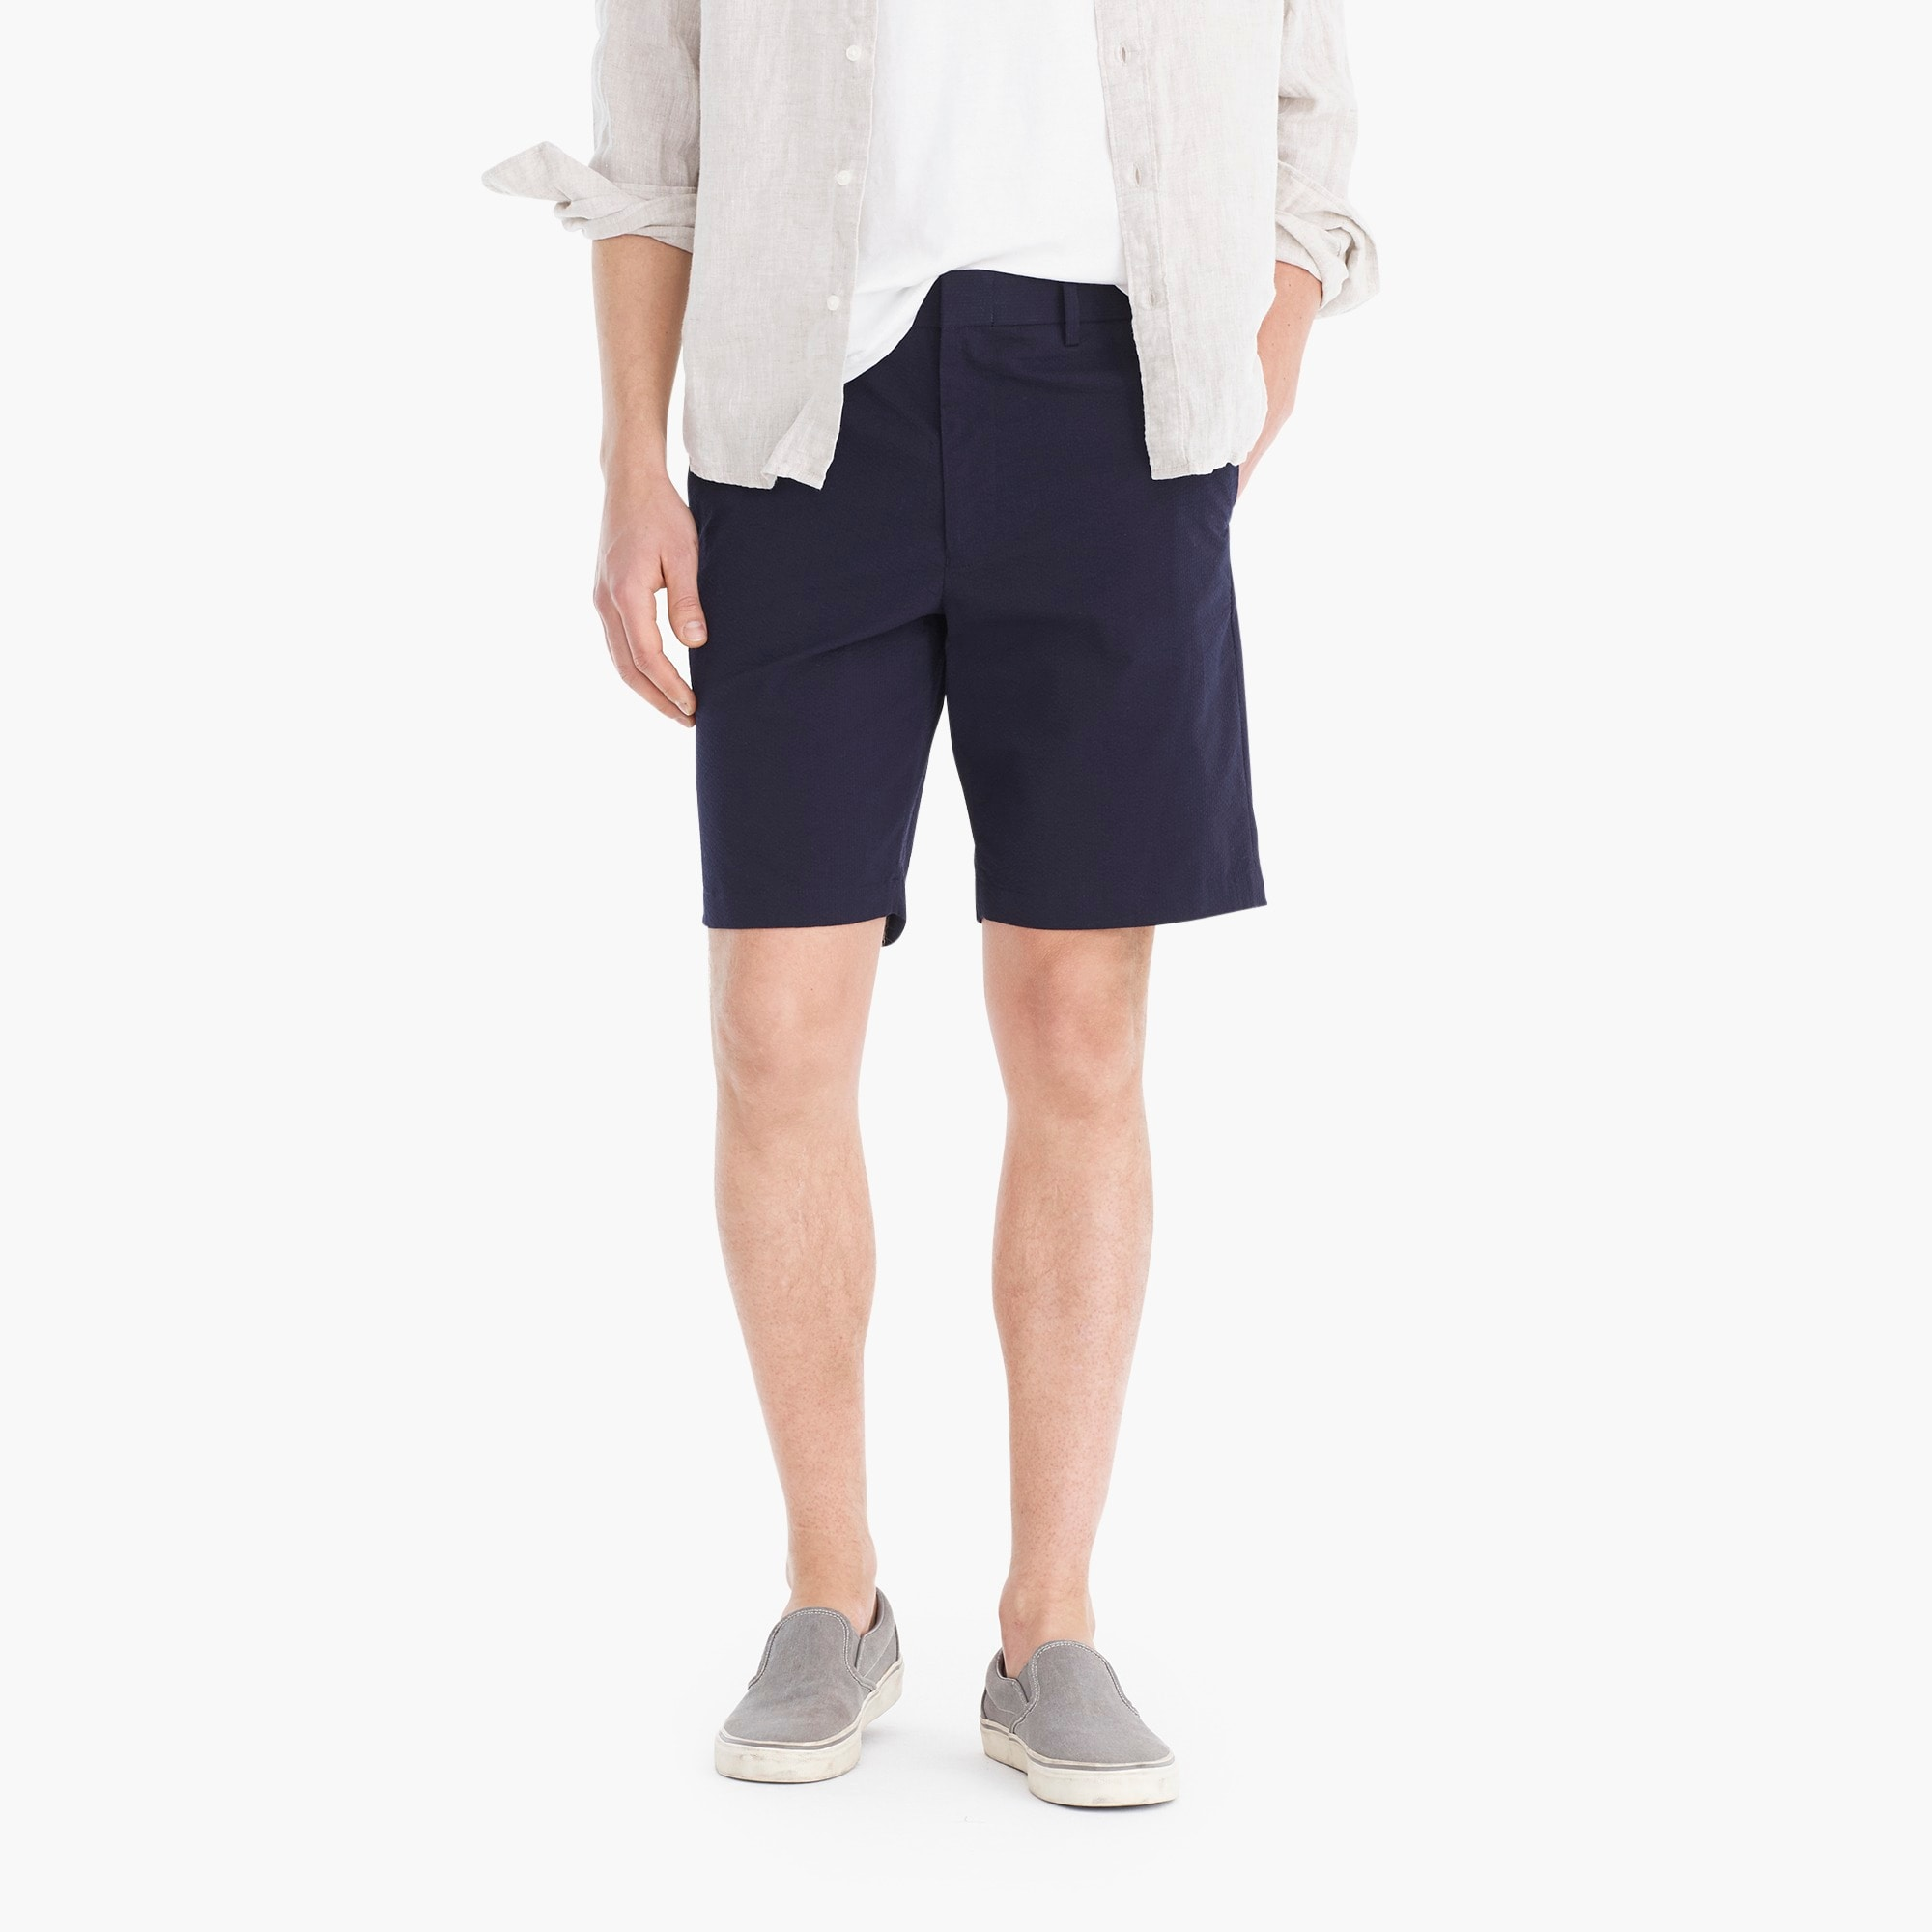 mens Seersucker short with COOLMAX® technology